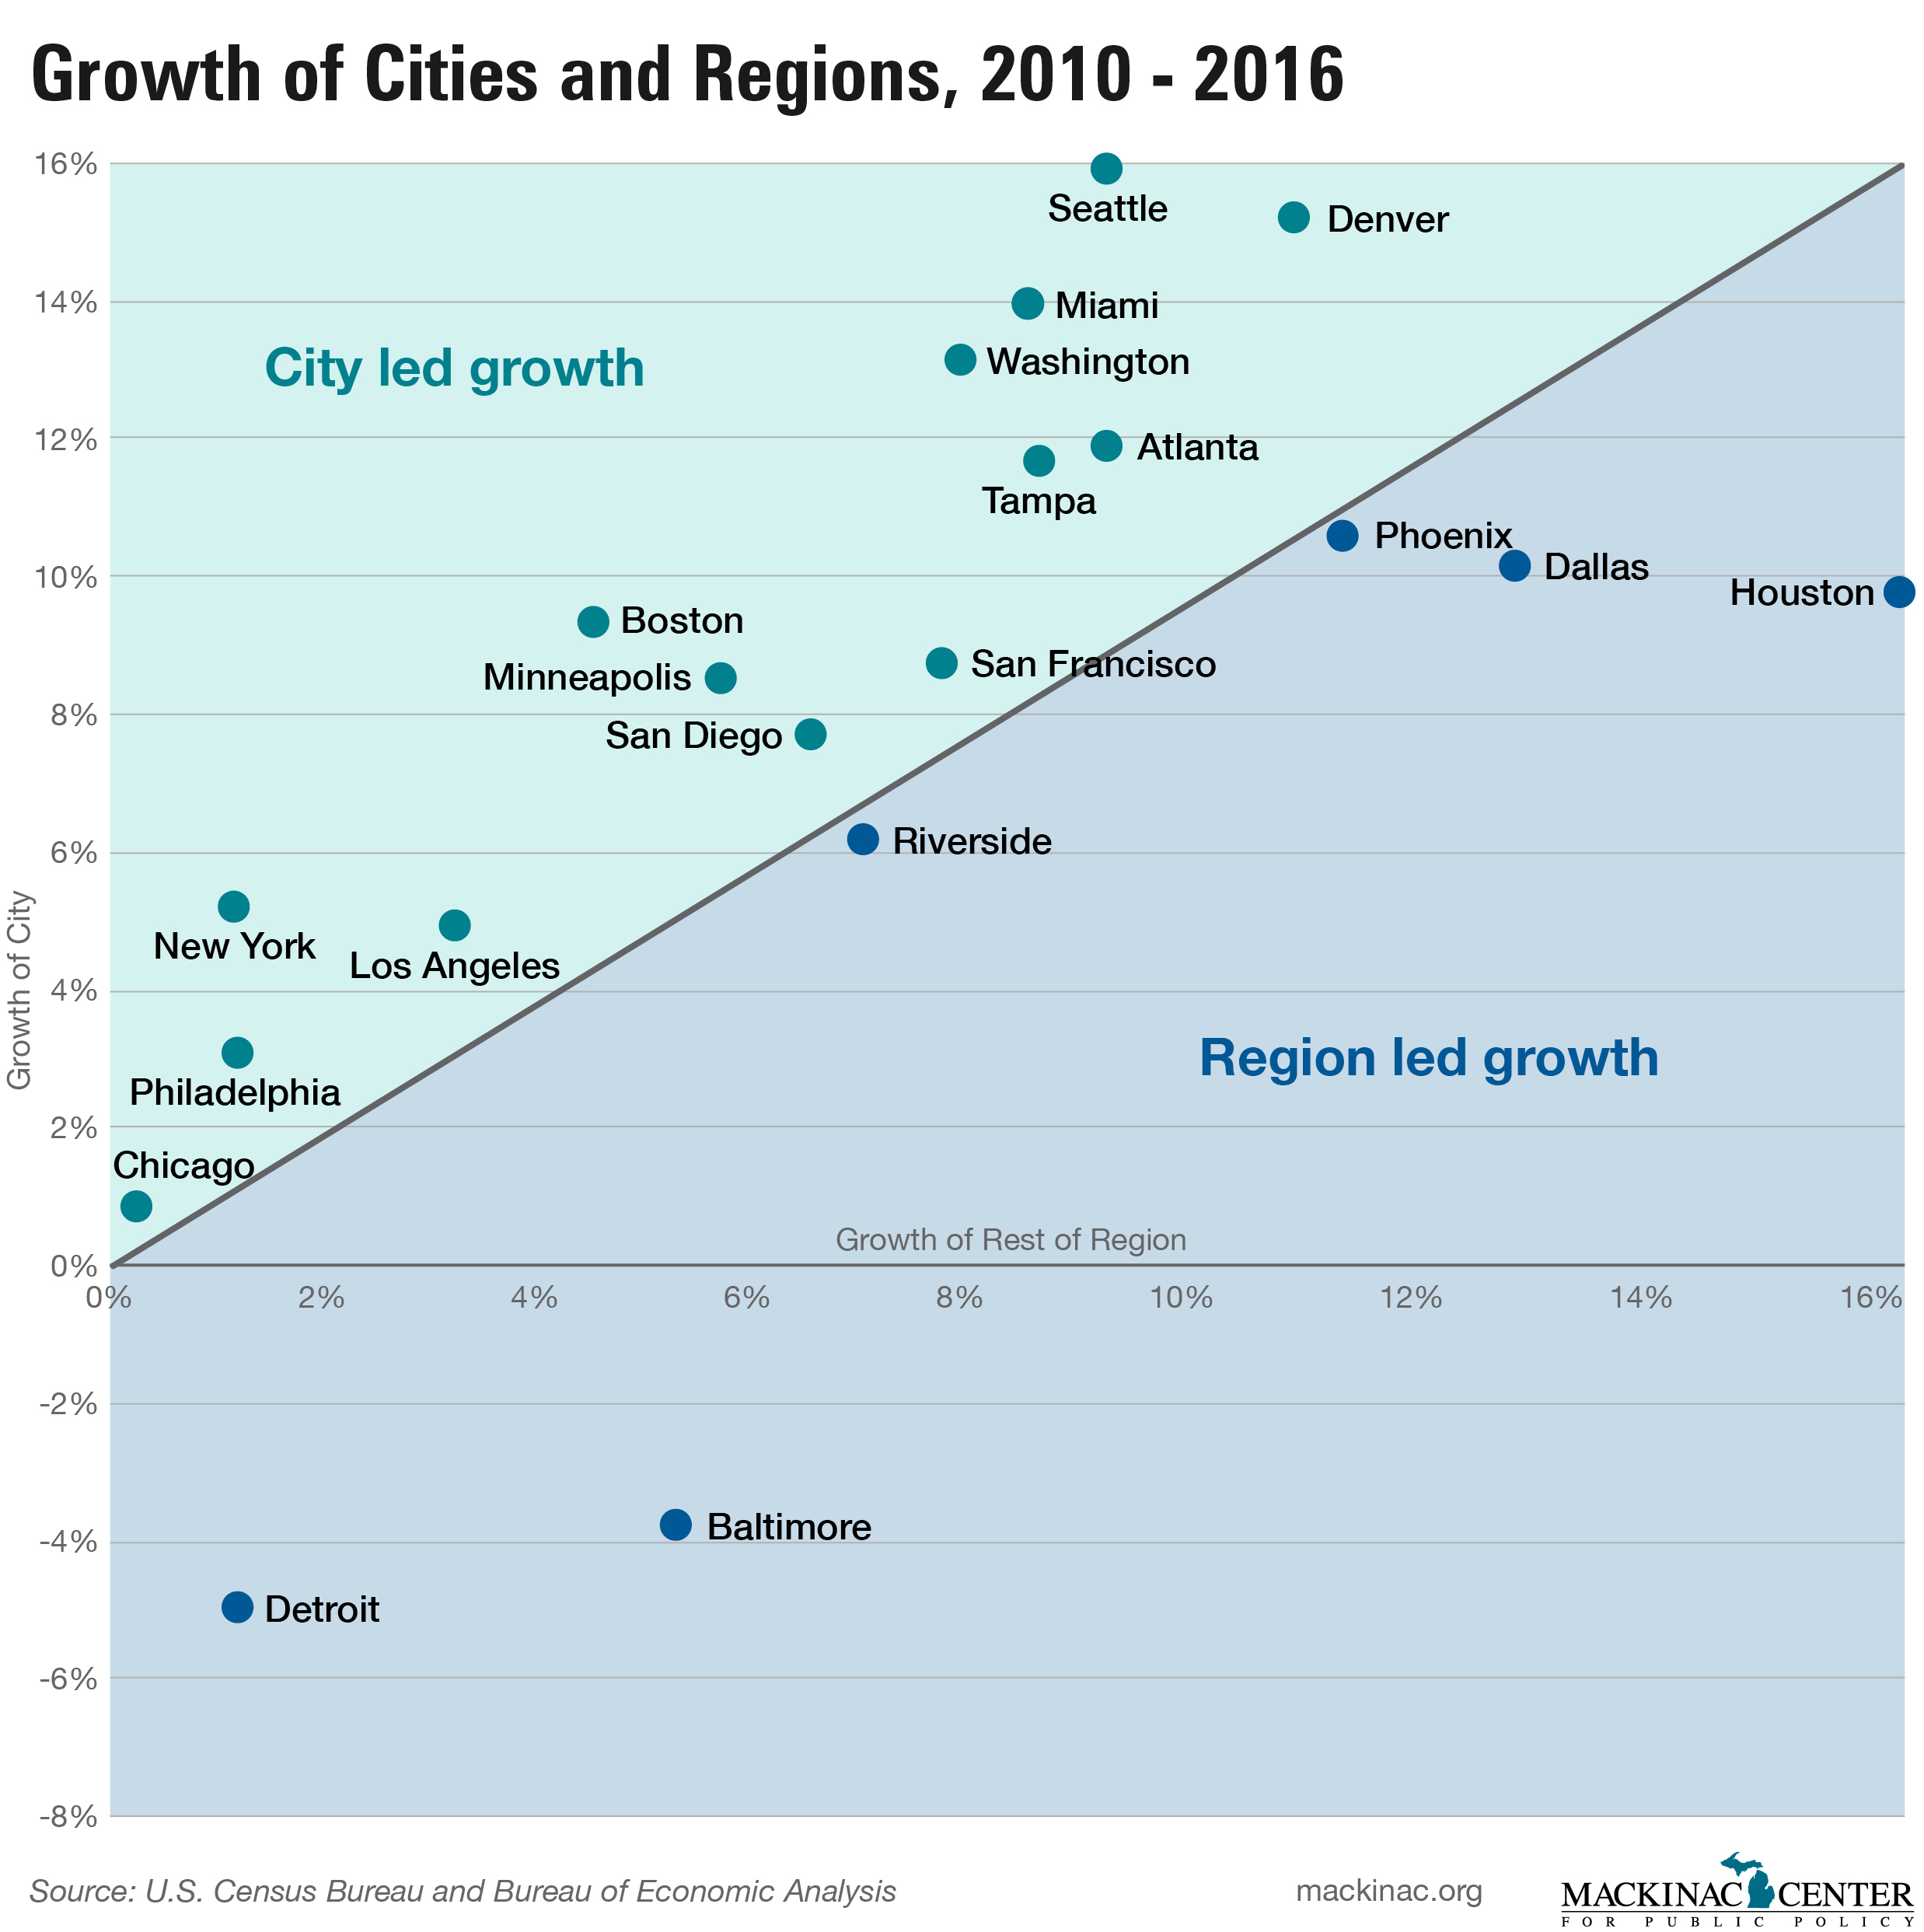 Growth of Cities and Regions